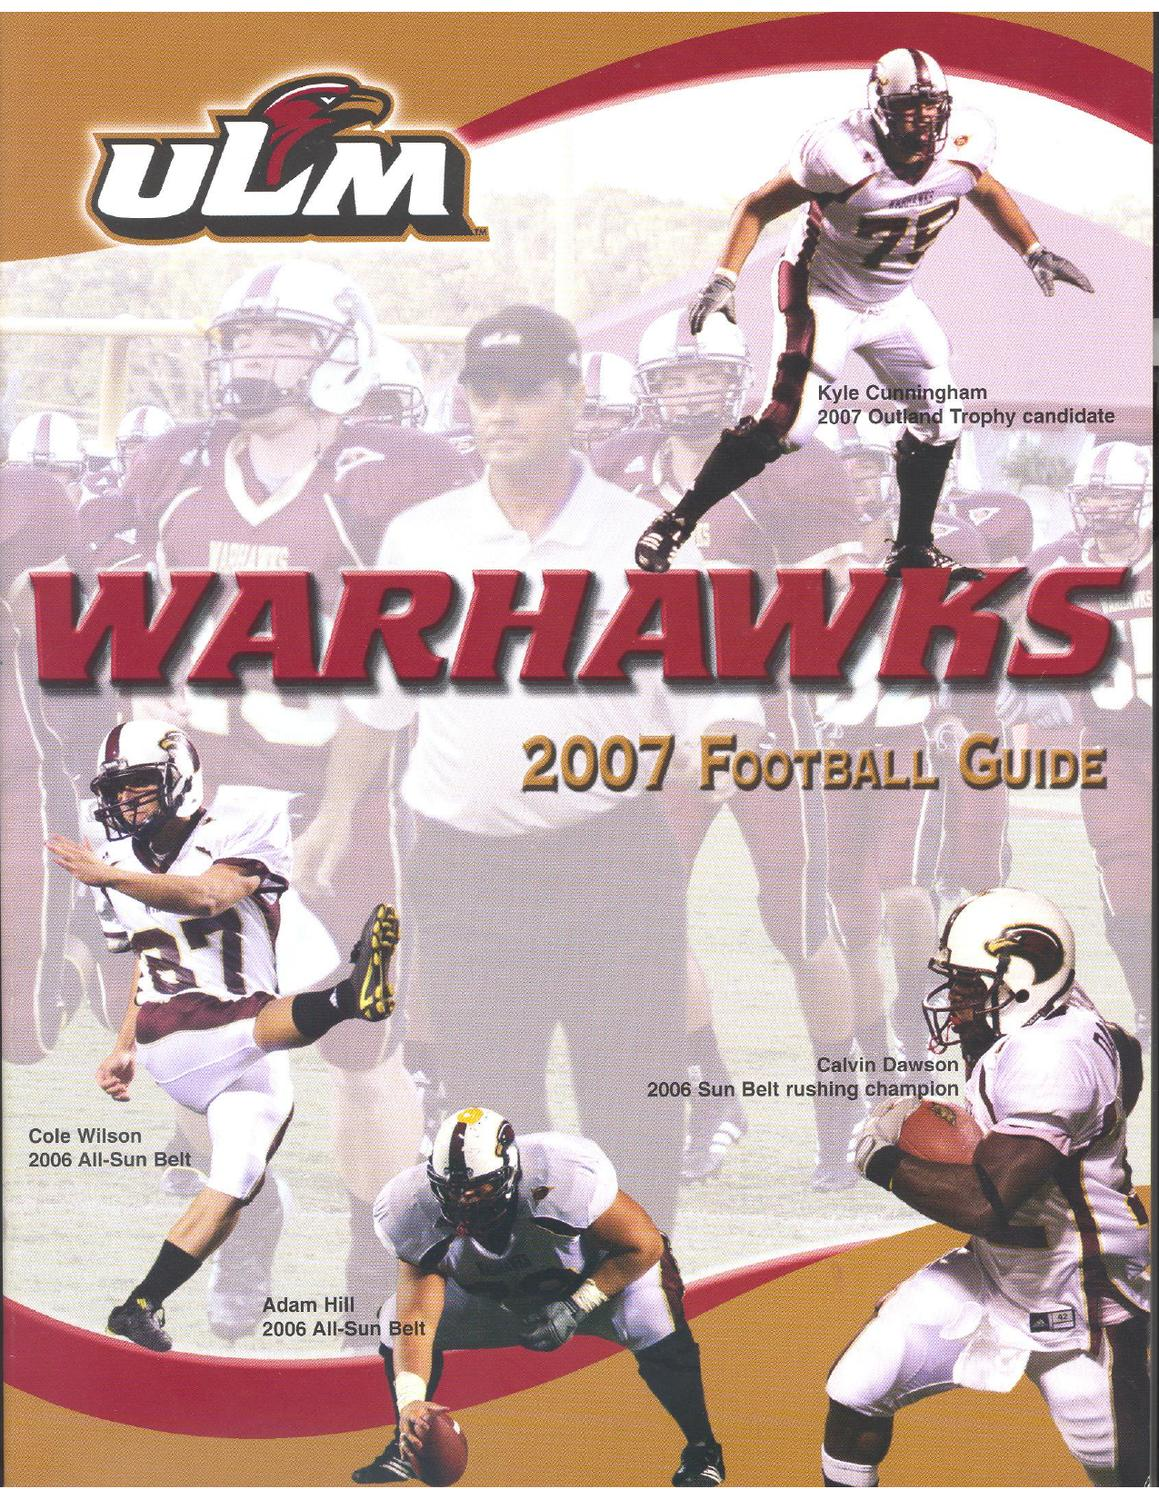 abd034432937 2007 ULM Football Guide by ULM - issuu